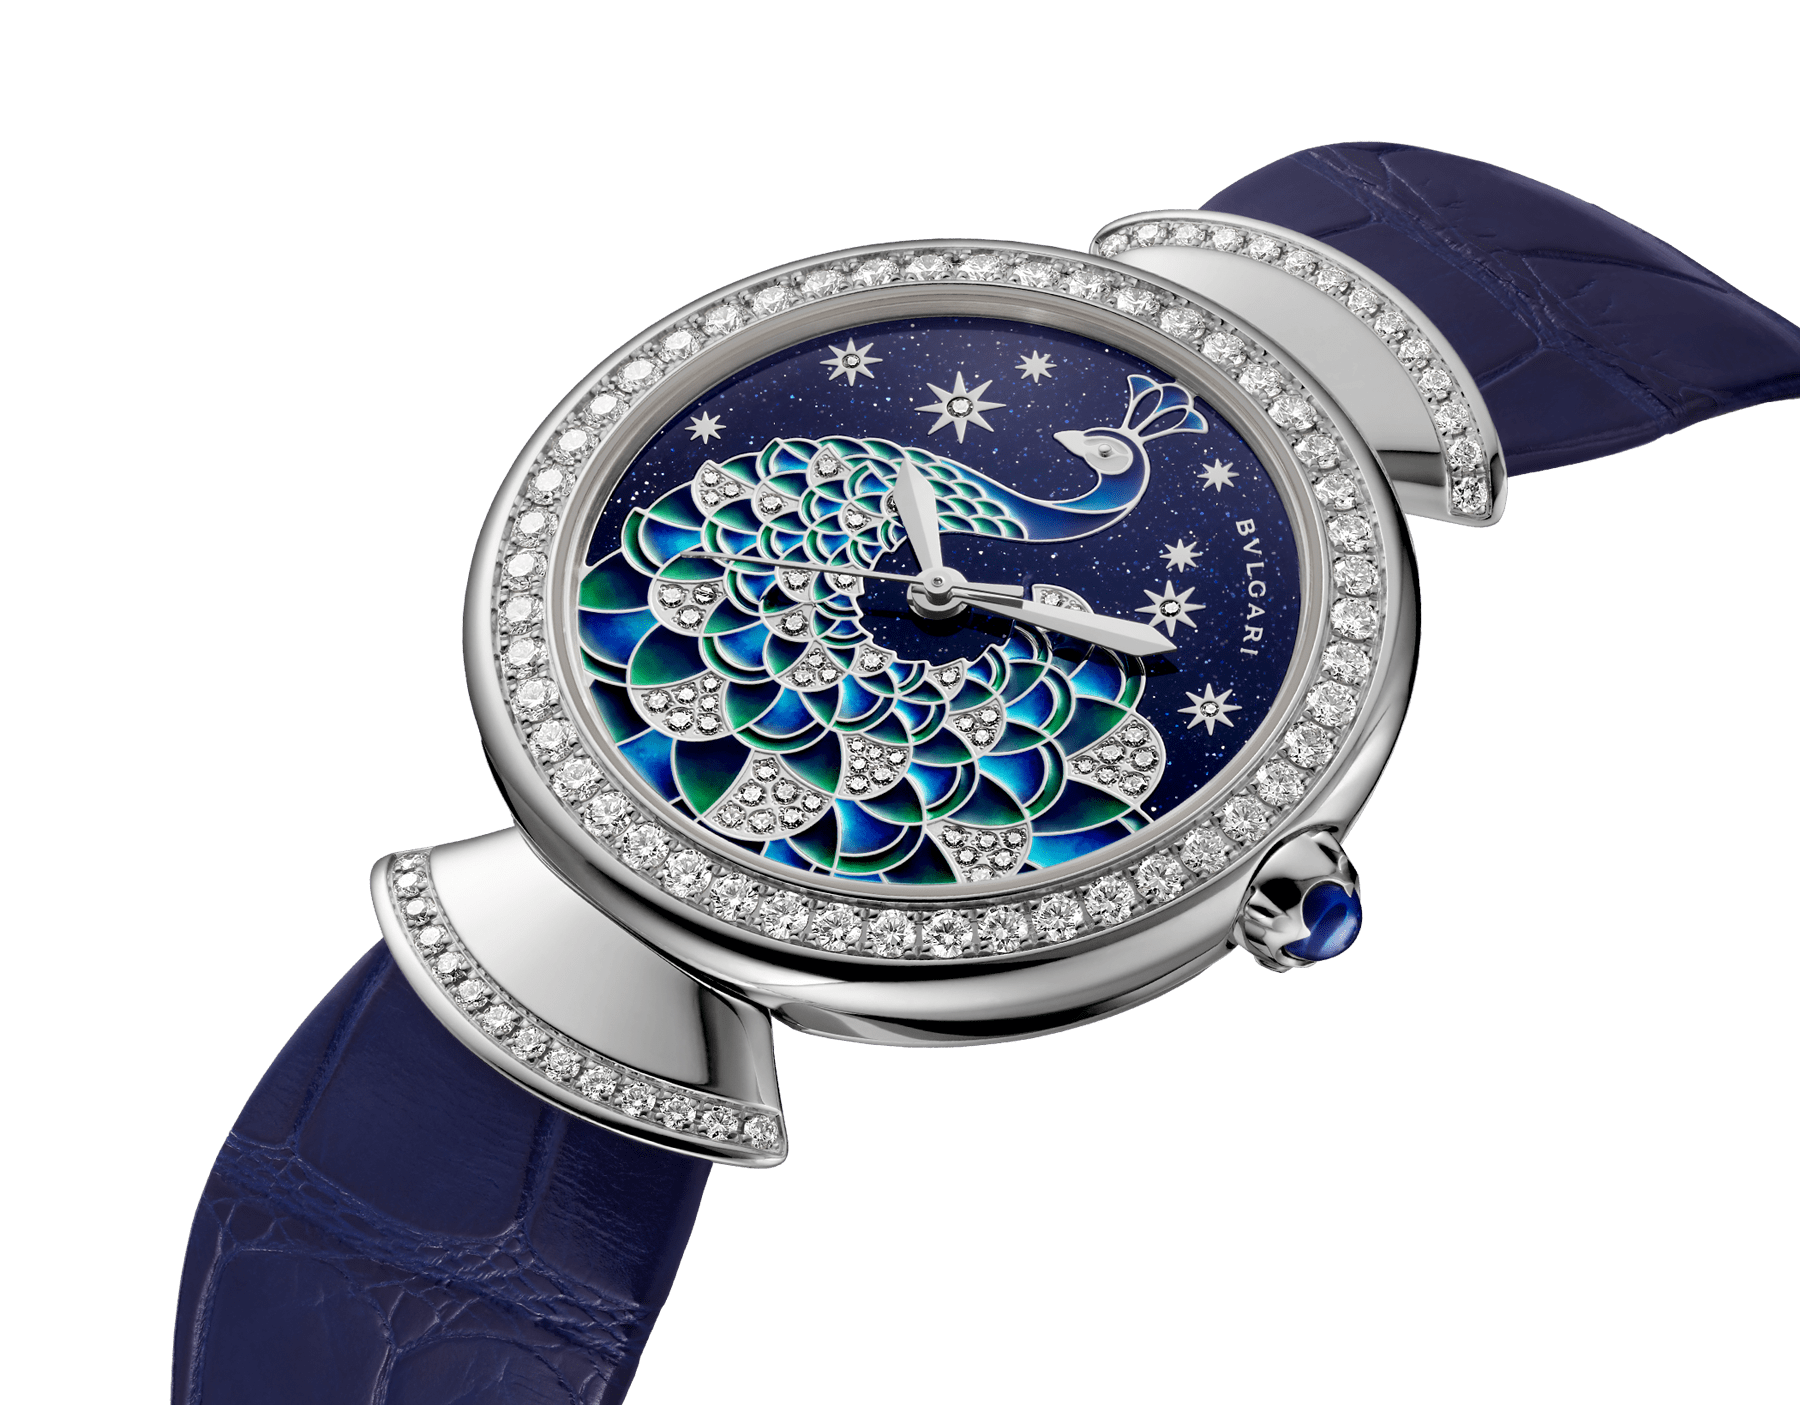 DIVAS' DREAM watch with 18 kt white gold case set with brilliant-cut diamonds, aventurine dial with hand-painted peacock set with diamonds and dark blue alligator bracelet 102740 image 2